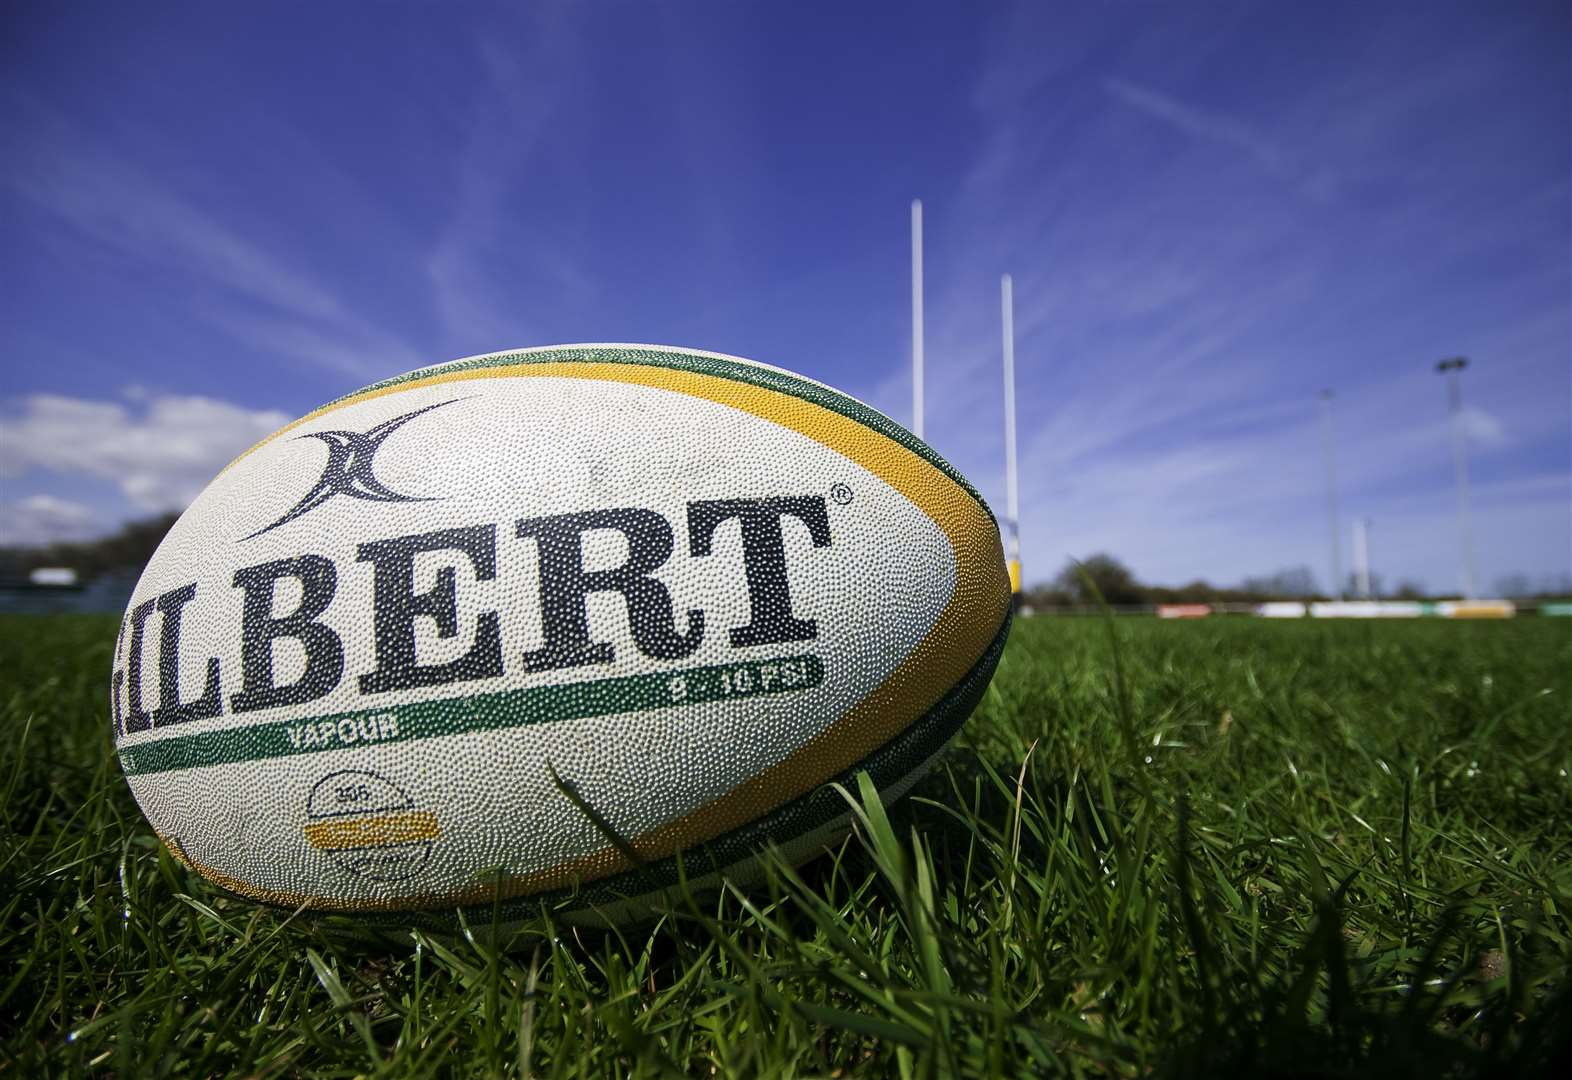 Mike Mayhew to bring Premiership nous to Cambridge Rugby Club